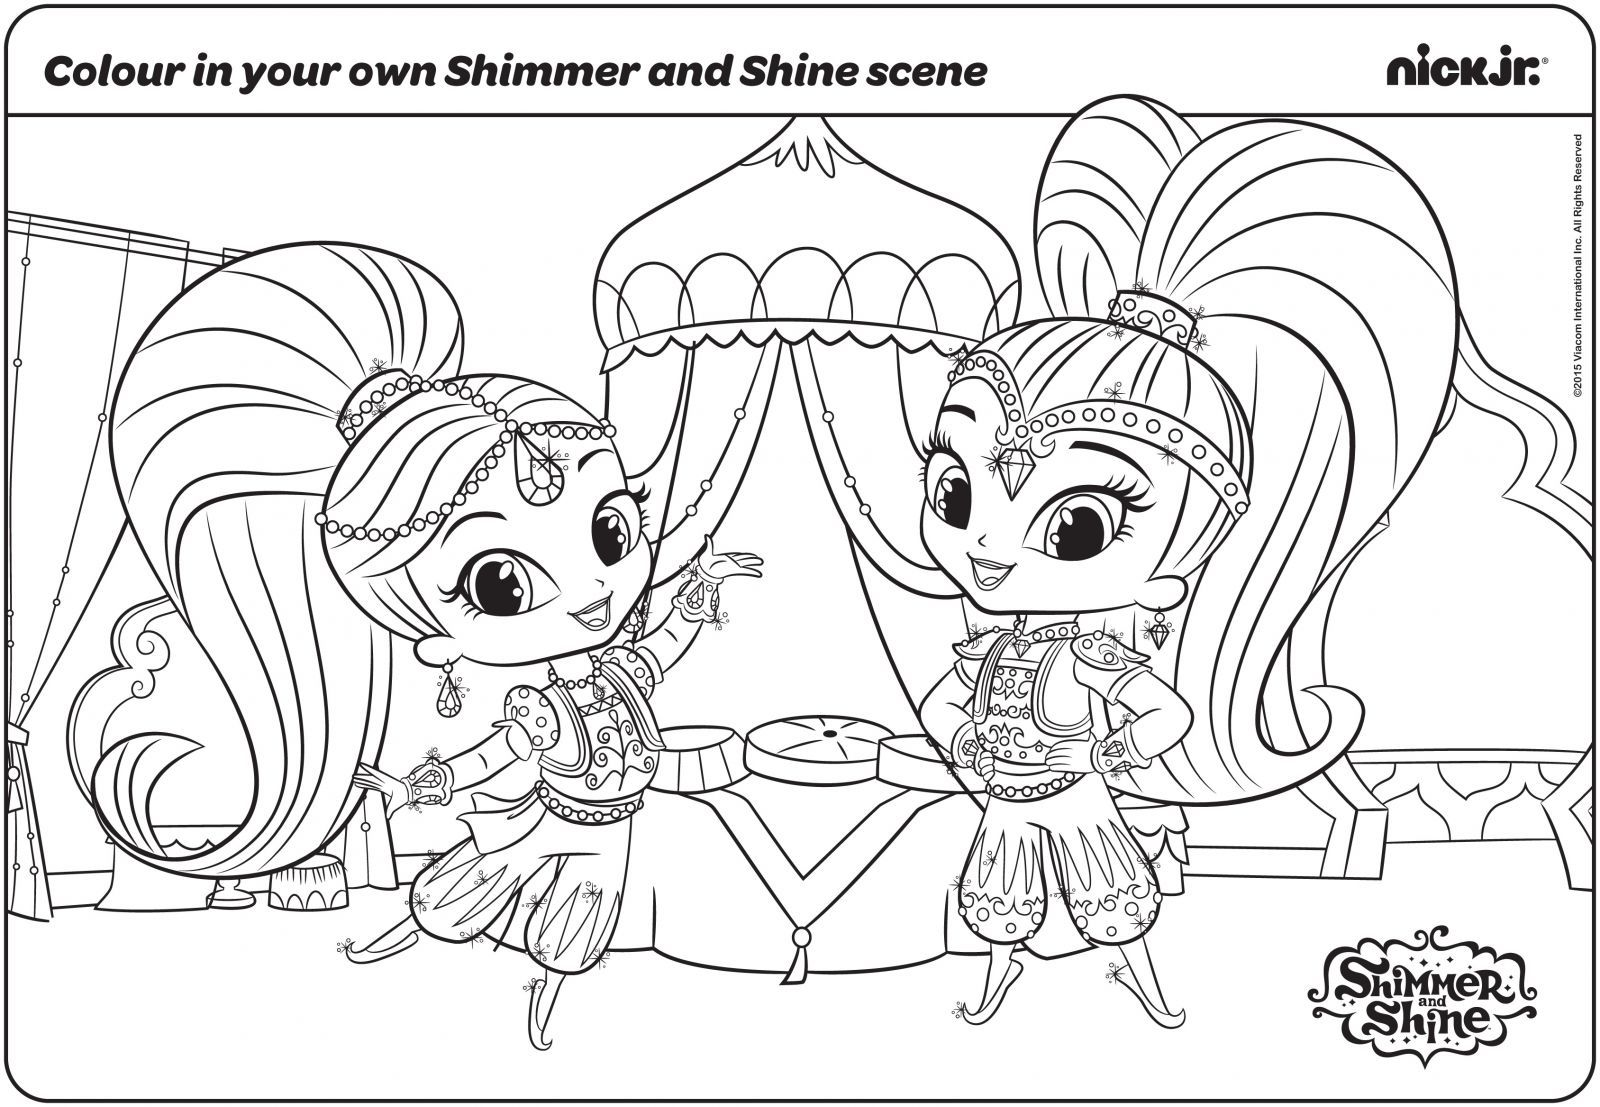 30 Magical Shimmer And Shine Coloring Pages Coloring Pages